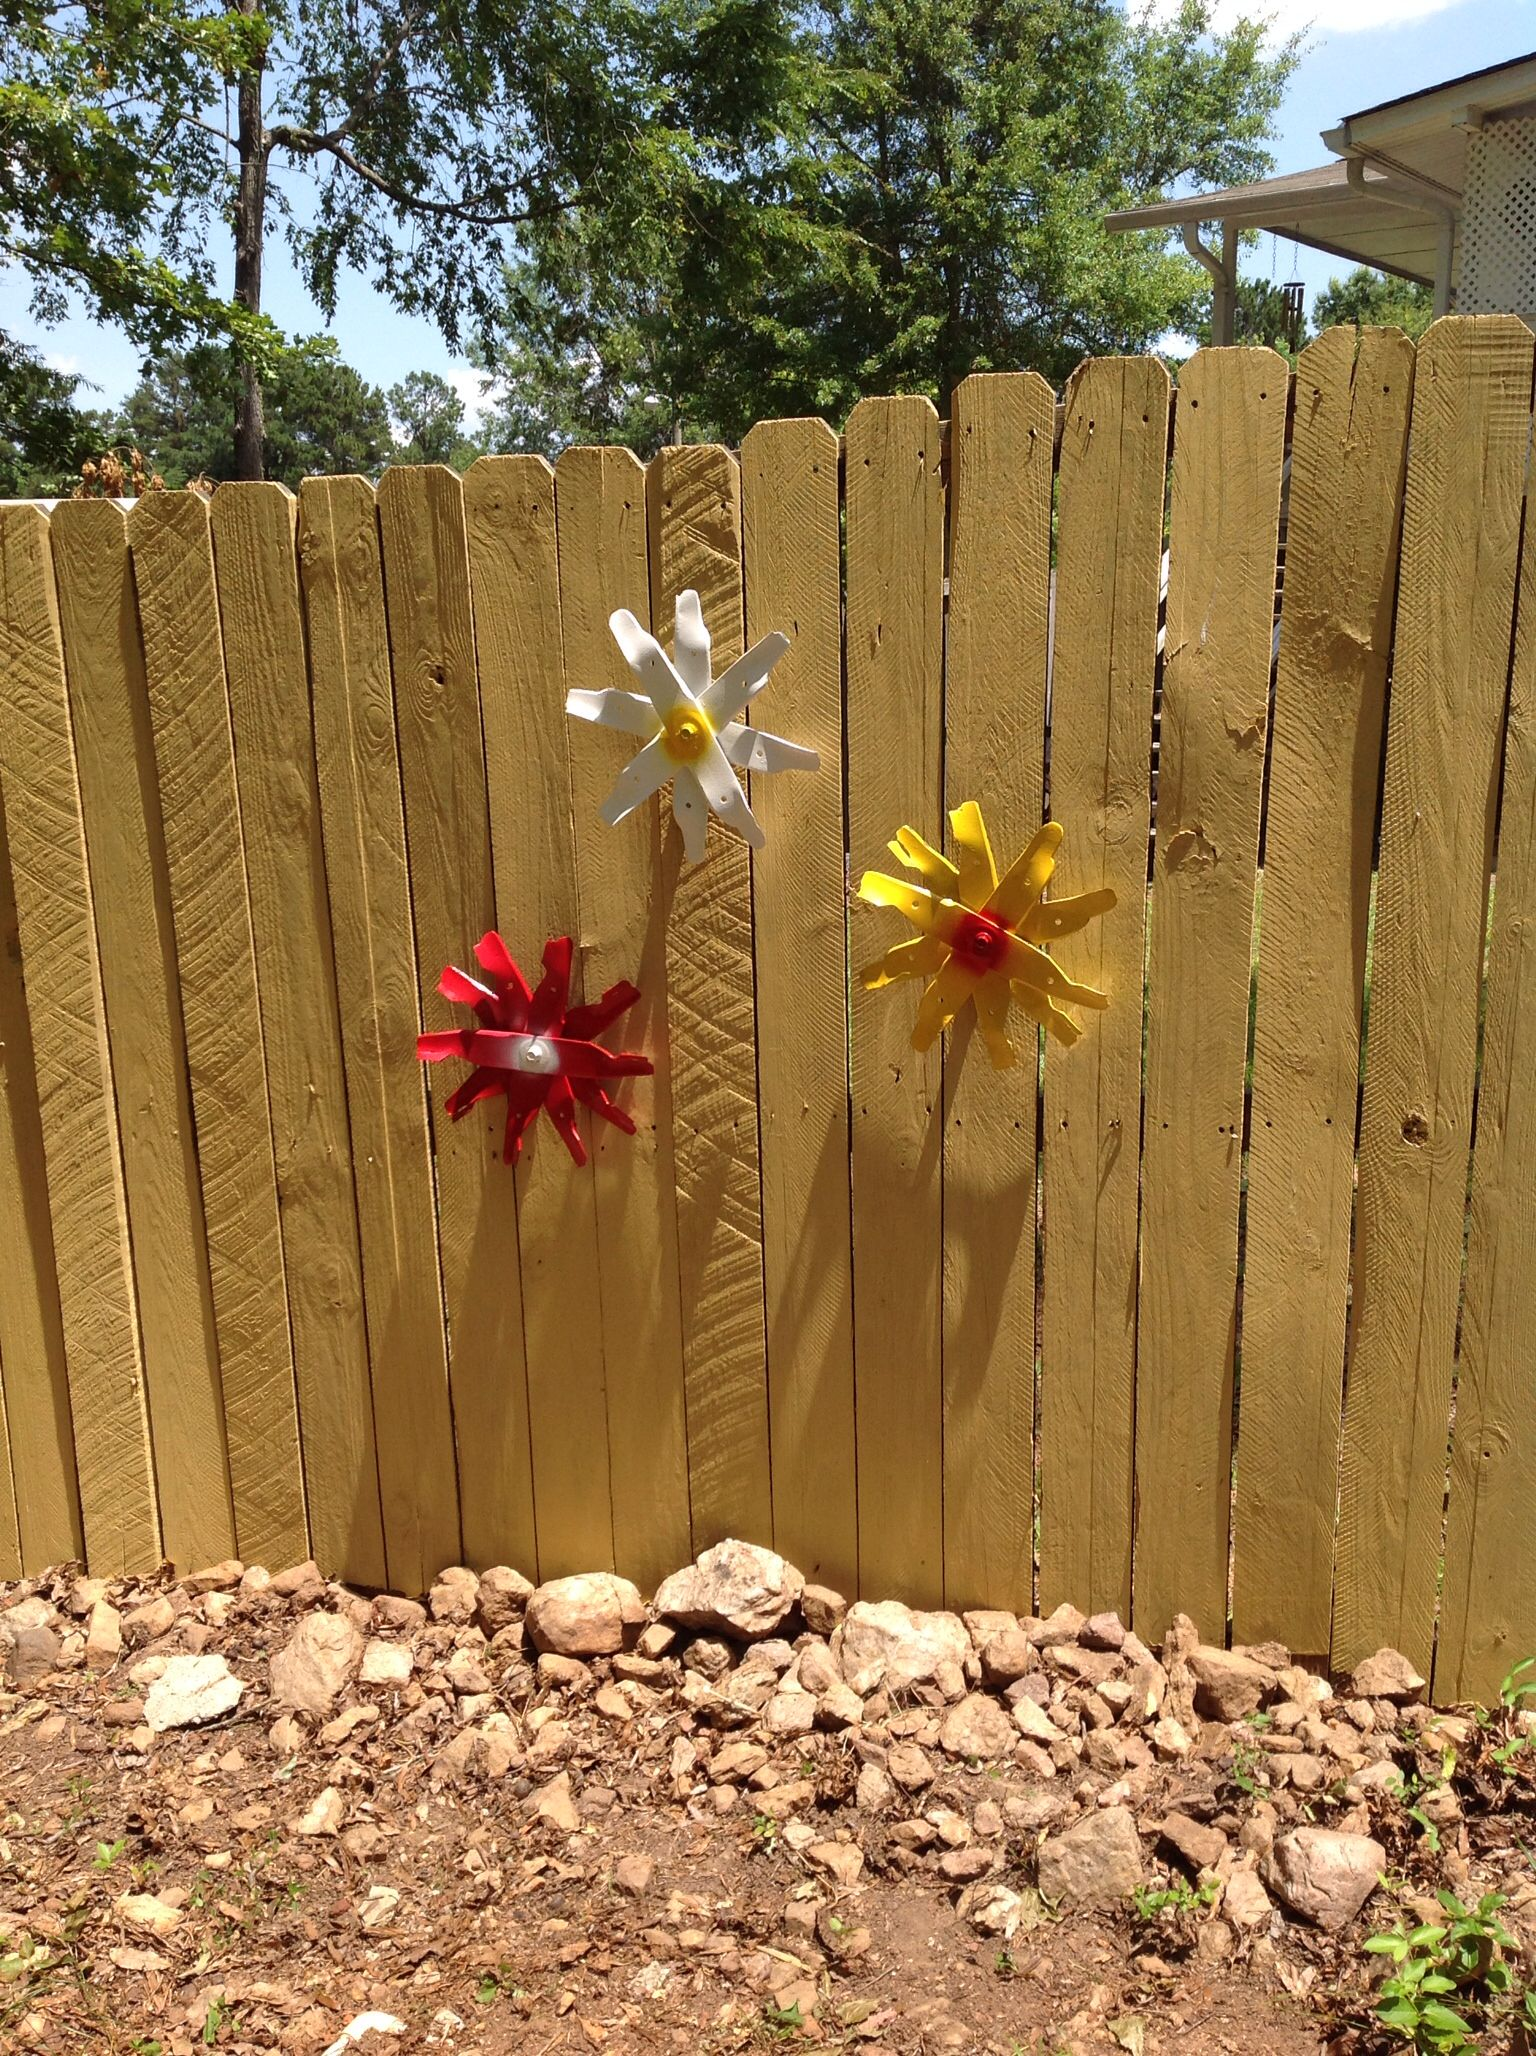 How To Make Metal Garden Art Part - 48: Used Lawn Mower Blades Make Metal Art Flowers For Garden Fence